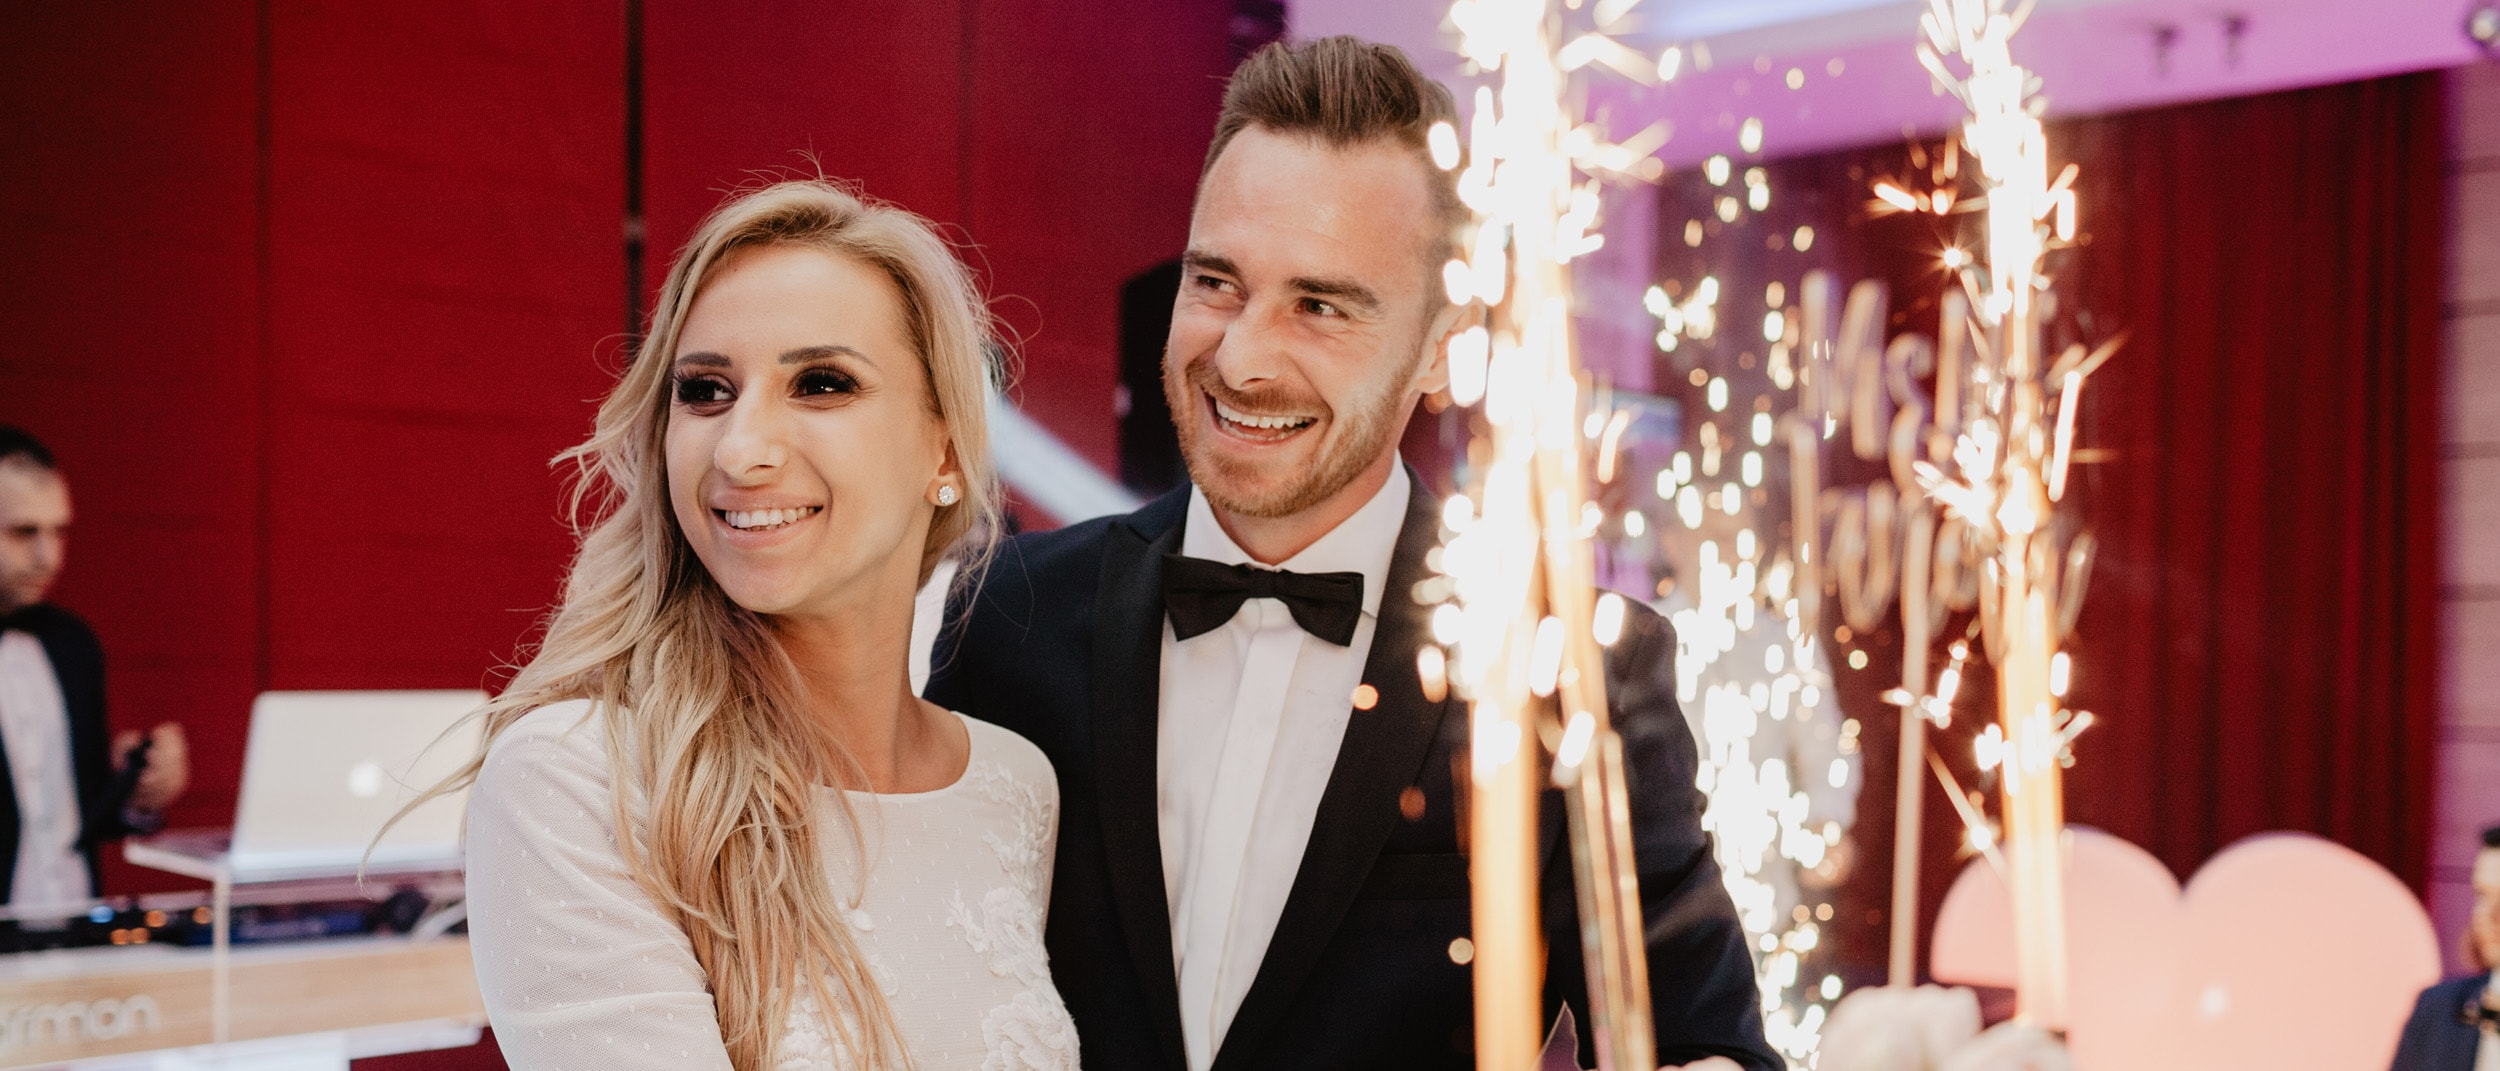 ANETA & MICHAL Wedding story - This time, not only about wedding, but also about family. Meet Aneta, Michał and their little wonderful Kacper, who makes everyone smile and makes such sincere emotions that it is difficult to describe in words.